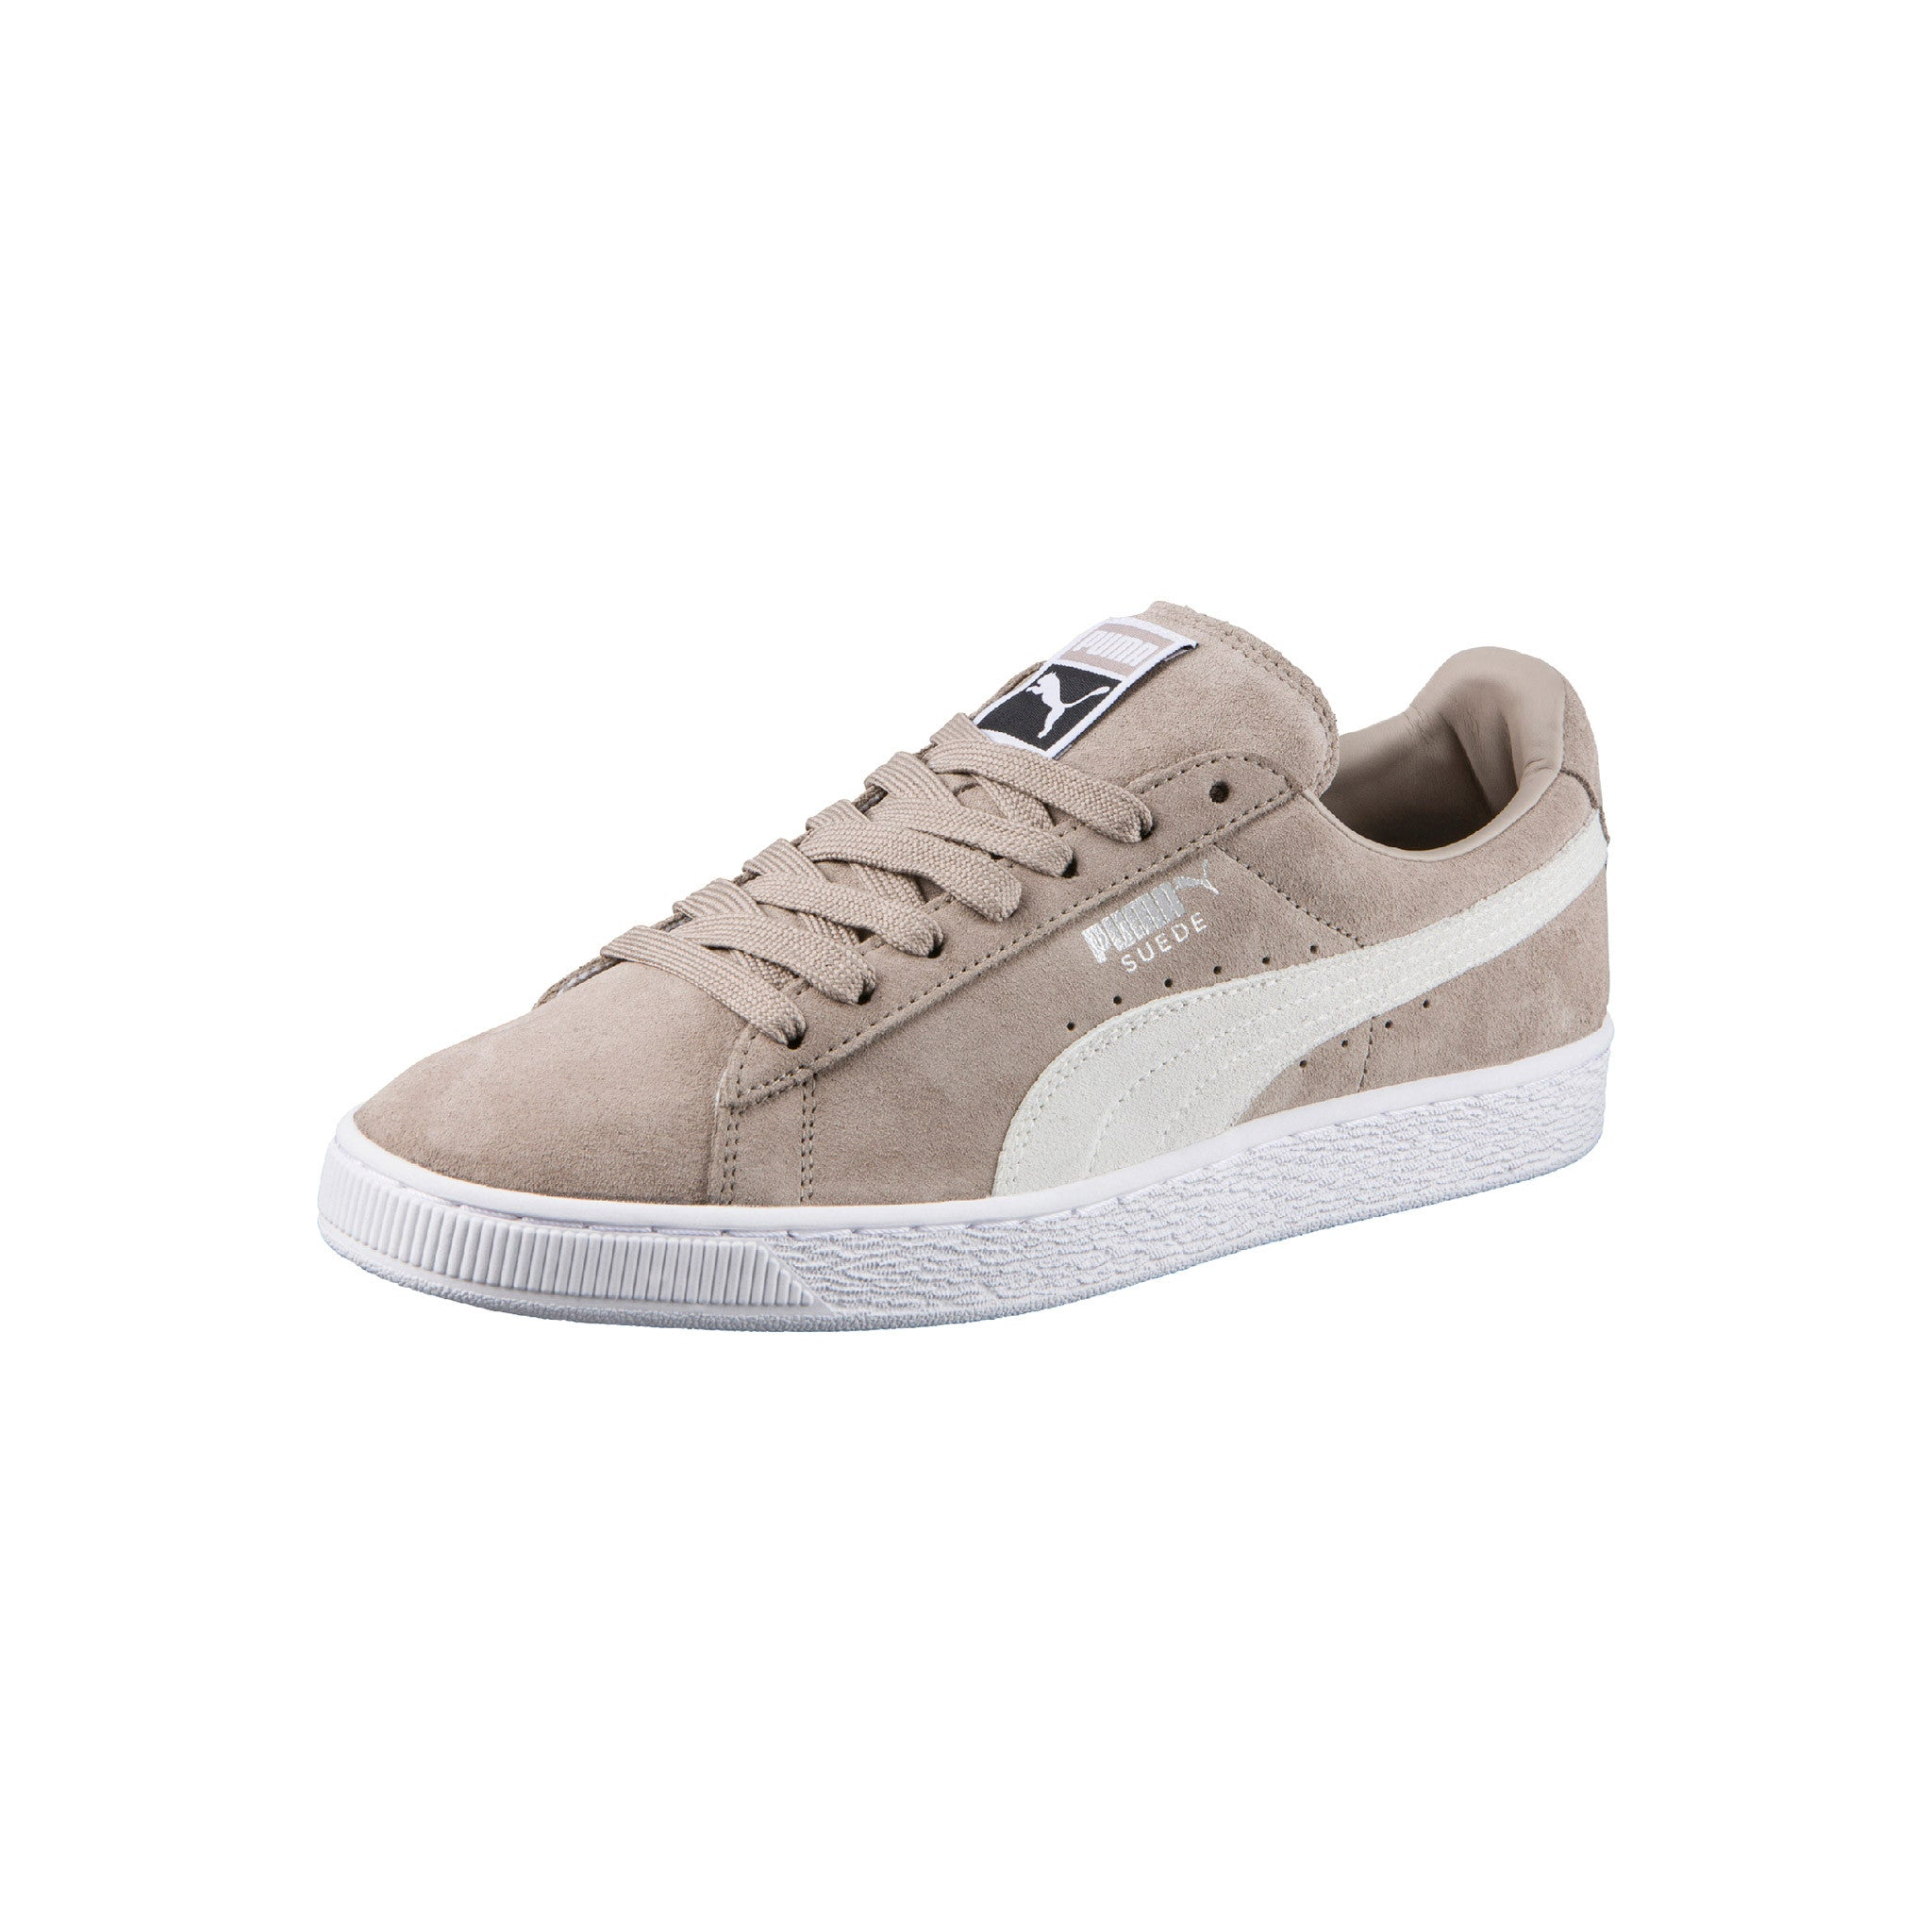 Suede Classic Puma Sneakers Beige Angled View